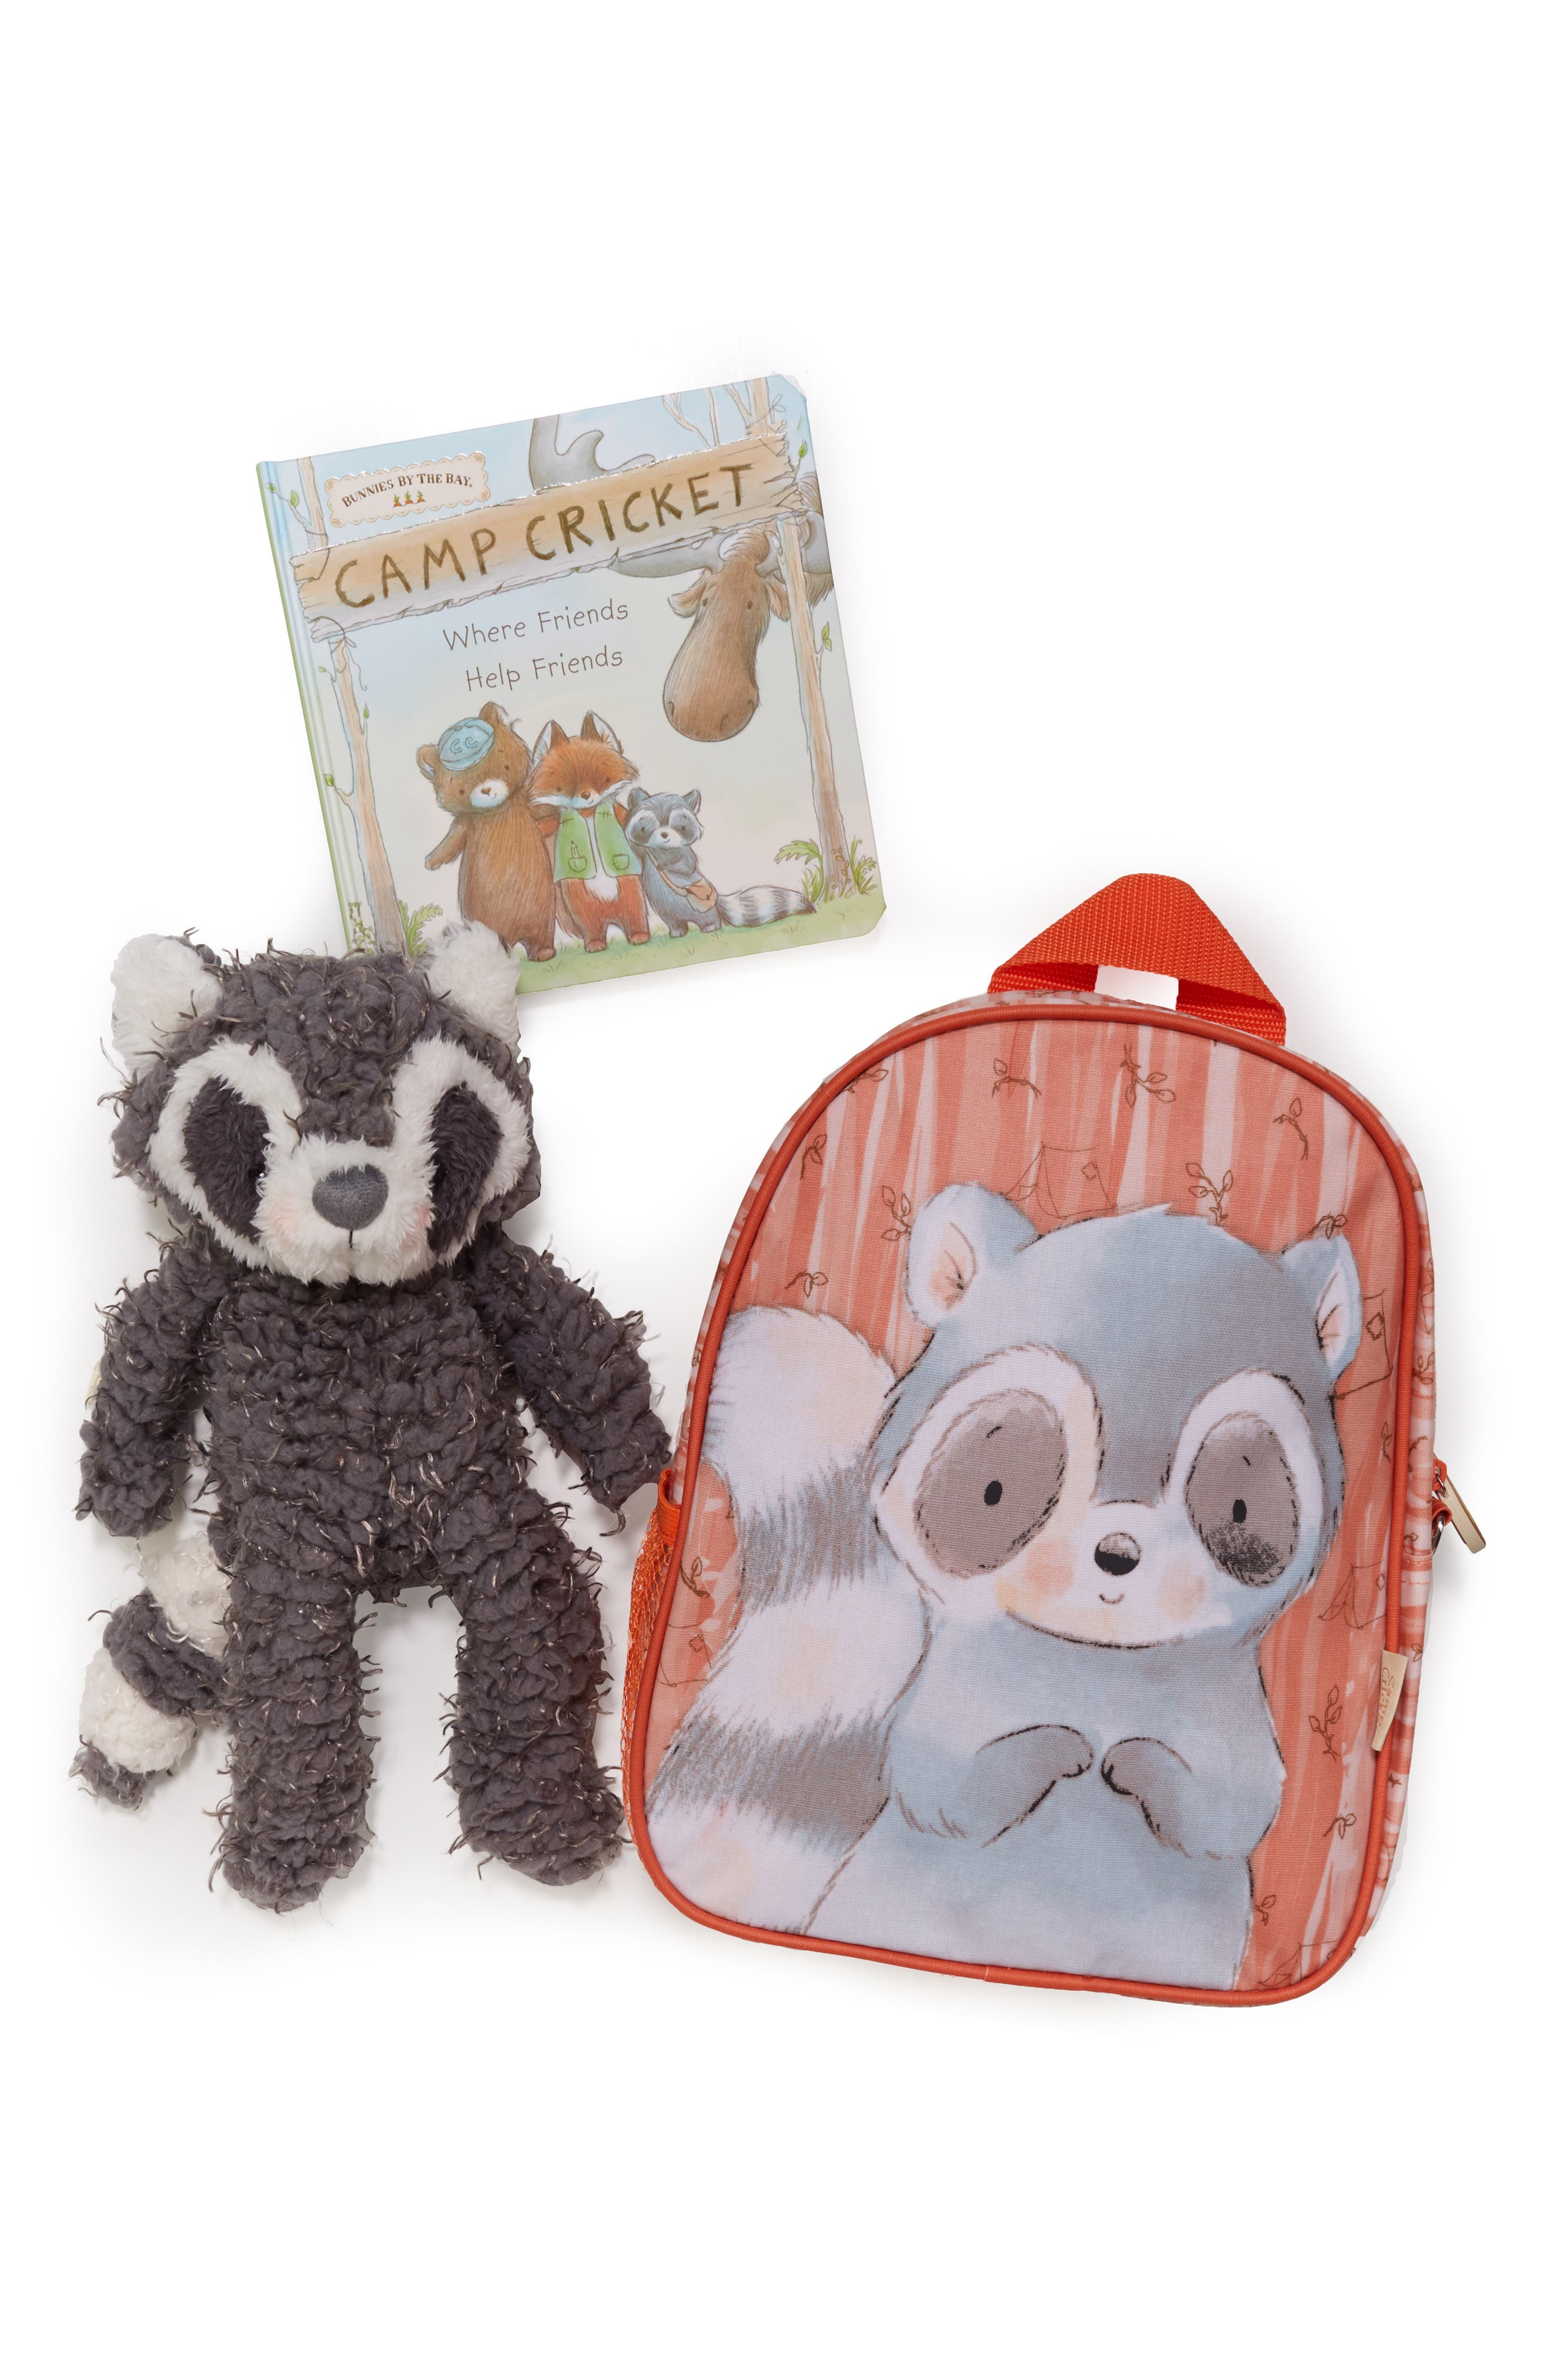 Roxy On the Go Backpack, Stuffed Animal & Board Book Set,                             Alternate thumbnail 2, color,                             GREY